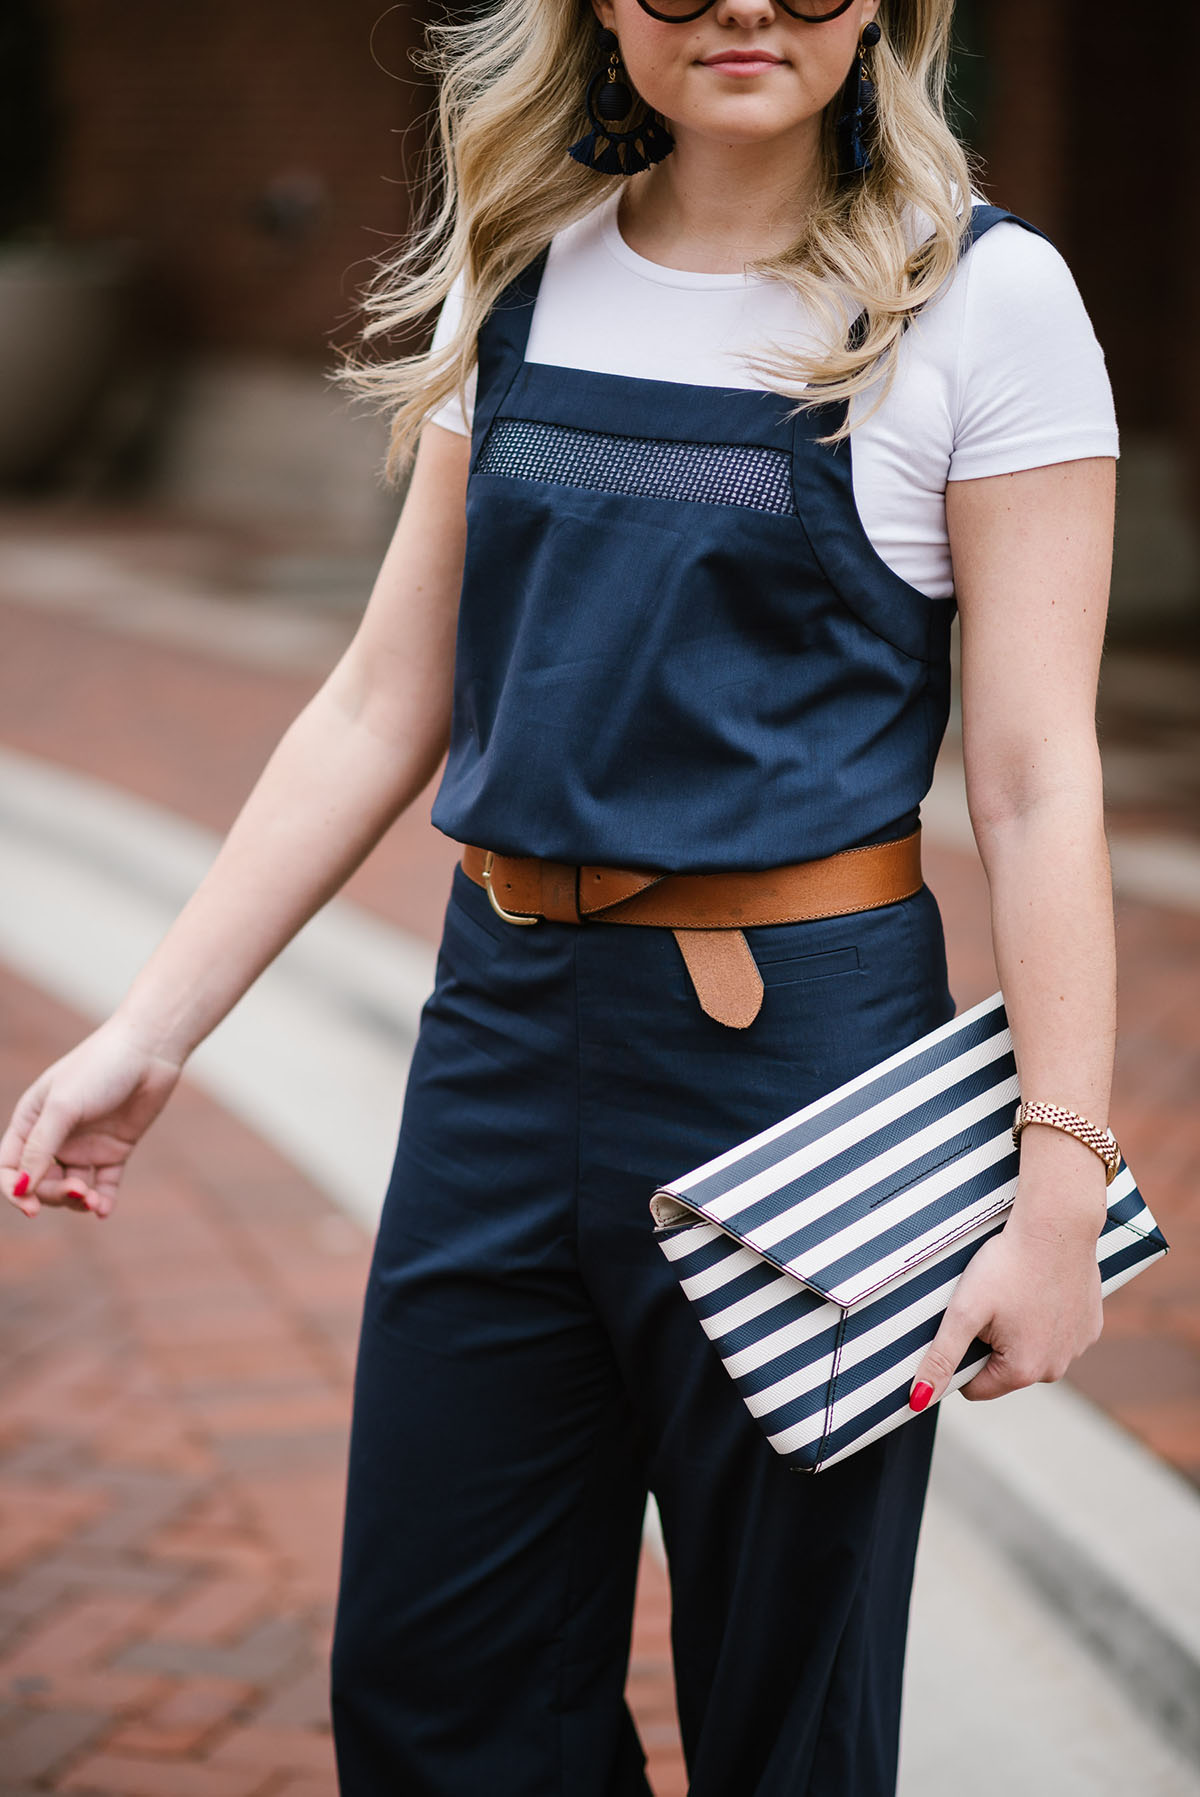 293a8342be83 Bows   Sequins styling a white tee shirt under a navy blue jumpsuit.  Jessica paired